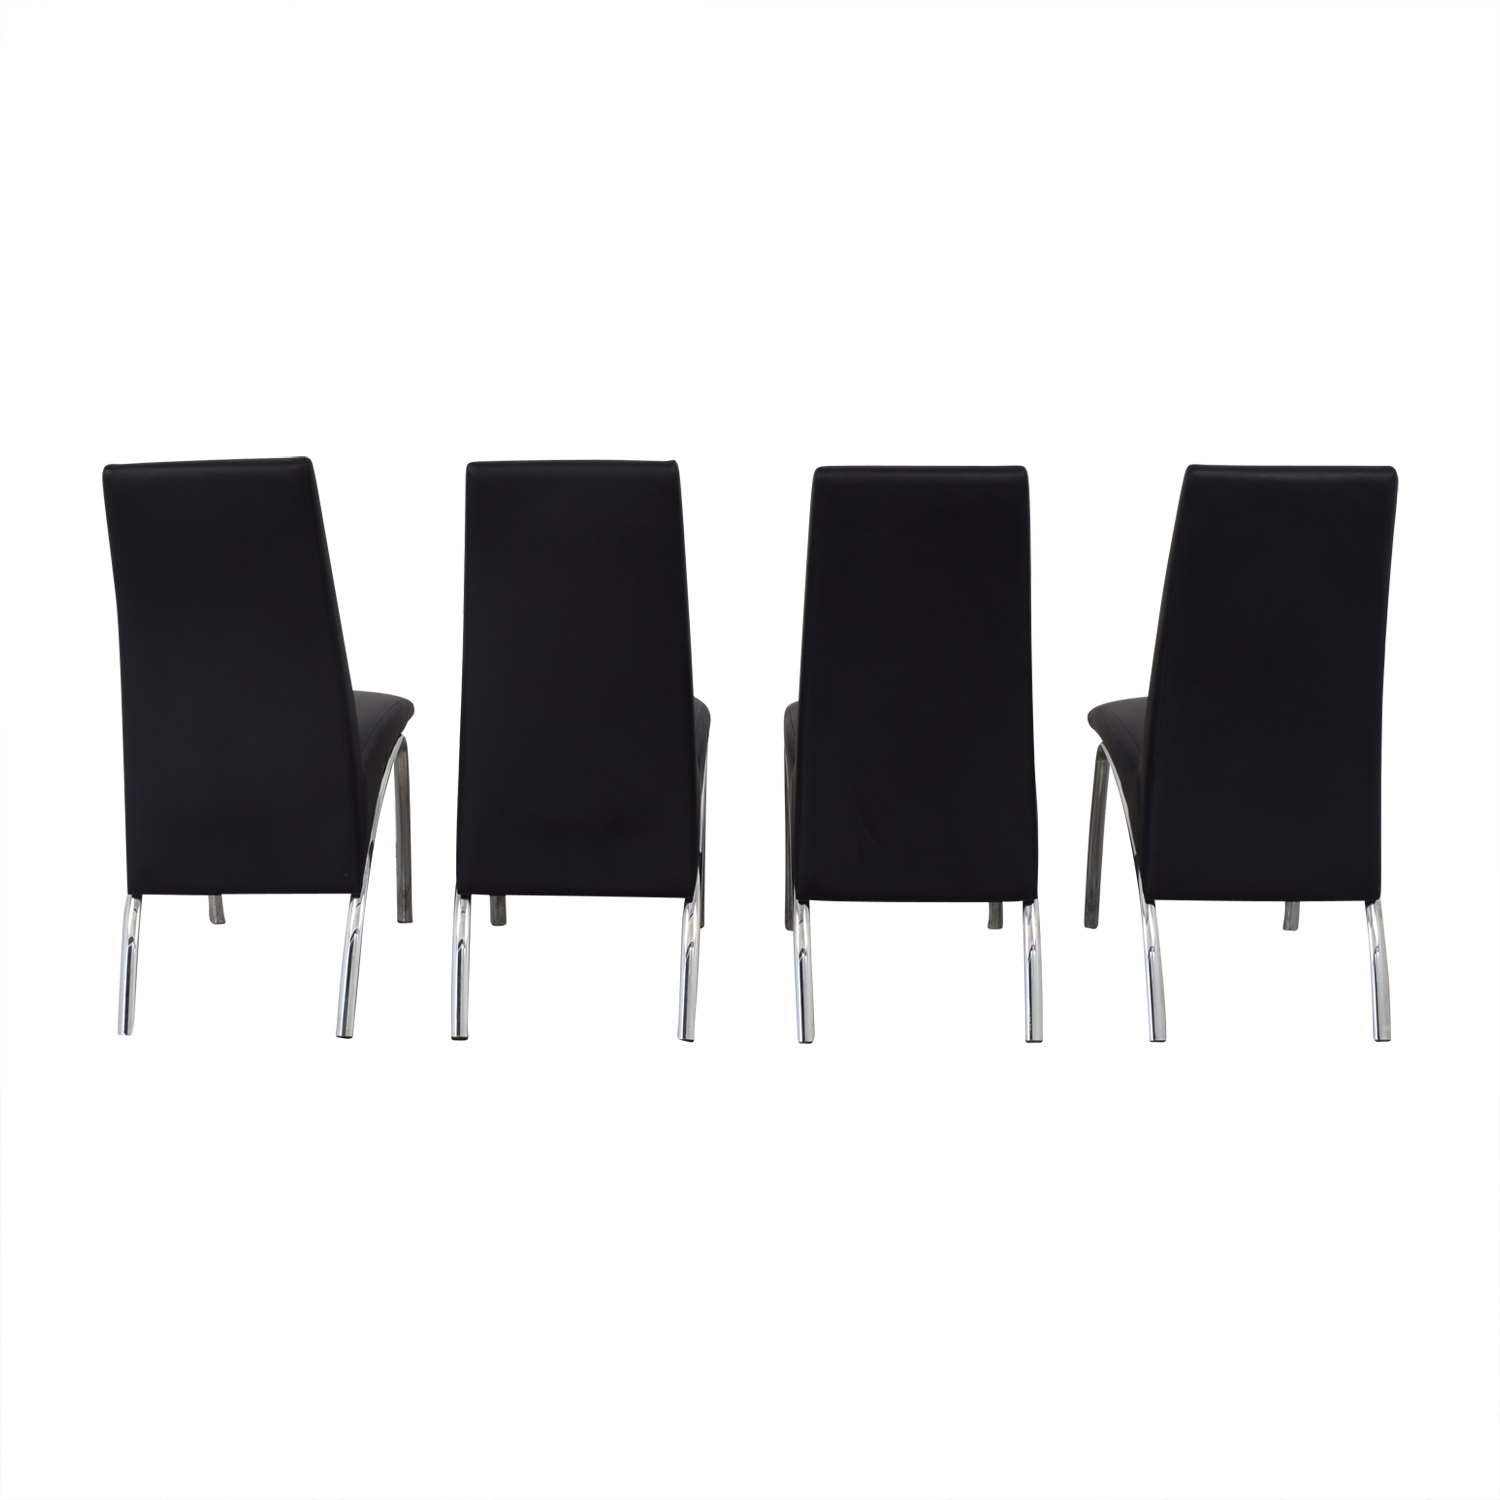 Coaster Fine Furniture Coaster Ophelia Leather Dining Chairs second hand